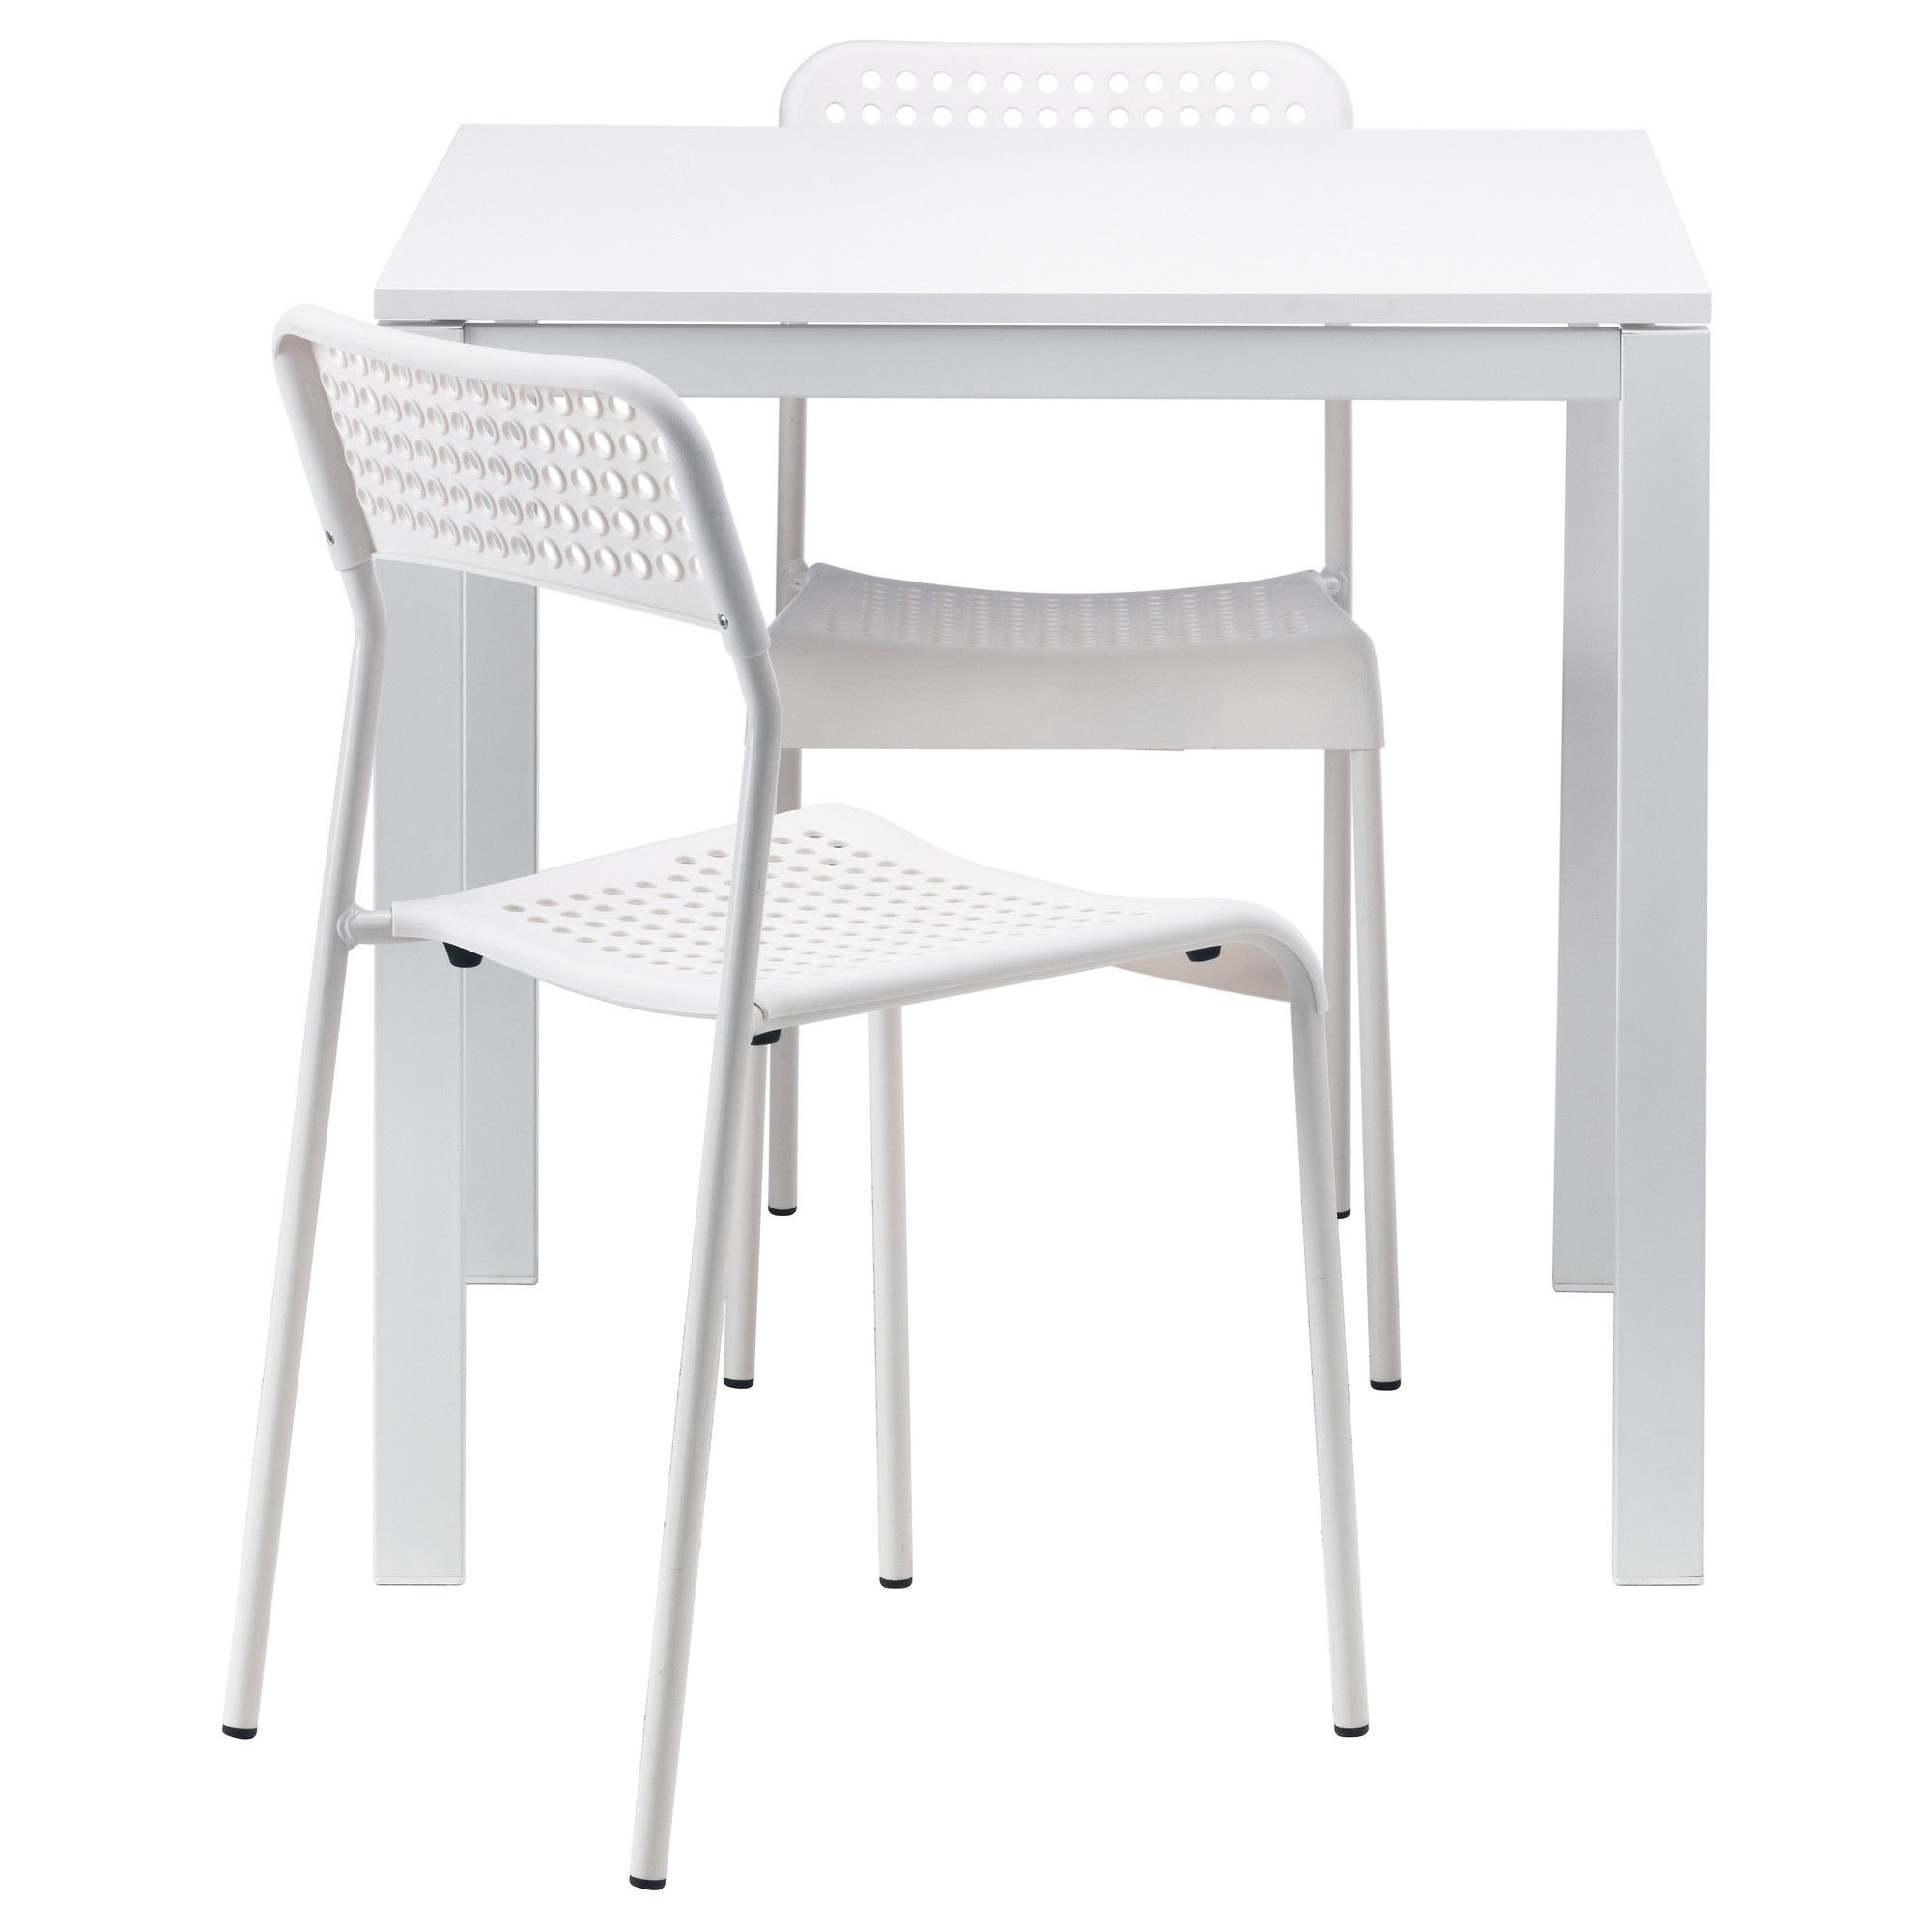 Ikea Kitchen Table And Chairs: MELLTORP / ADDE Table And 2 Chairs, White